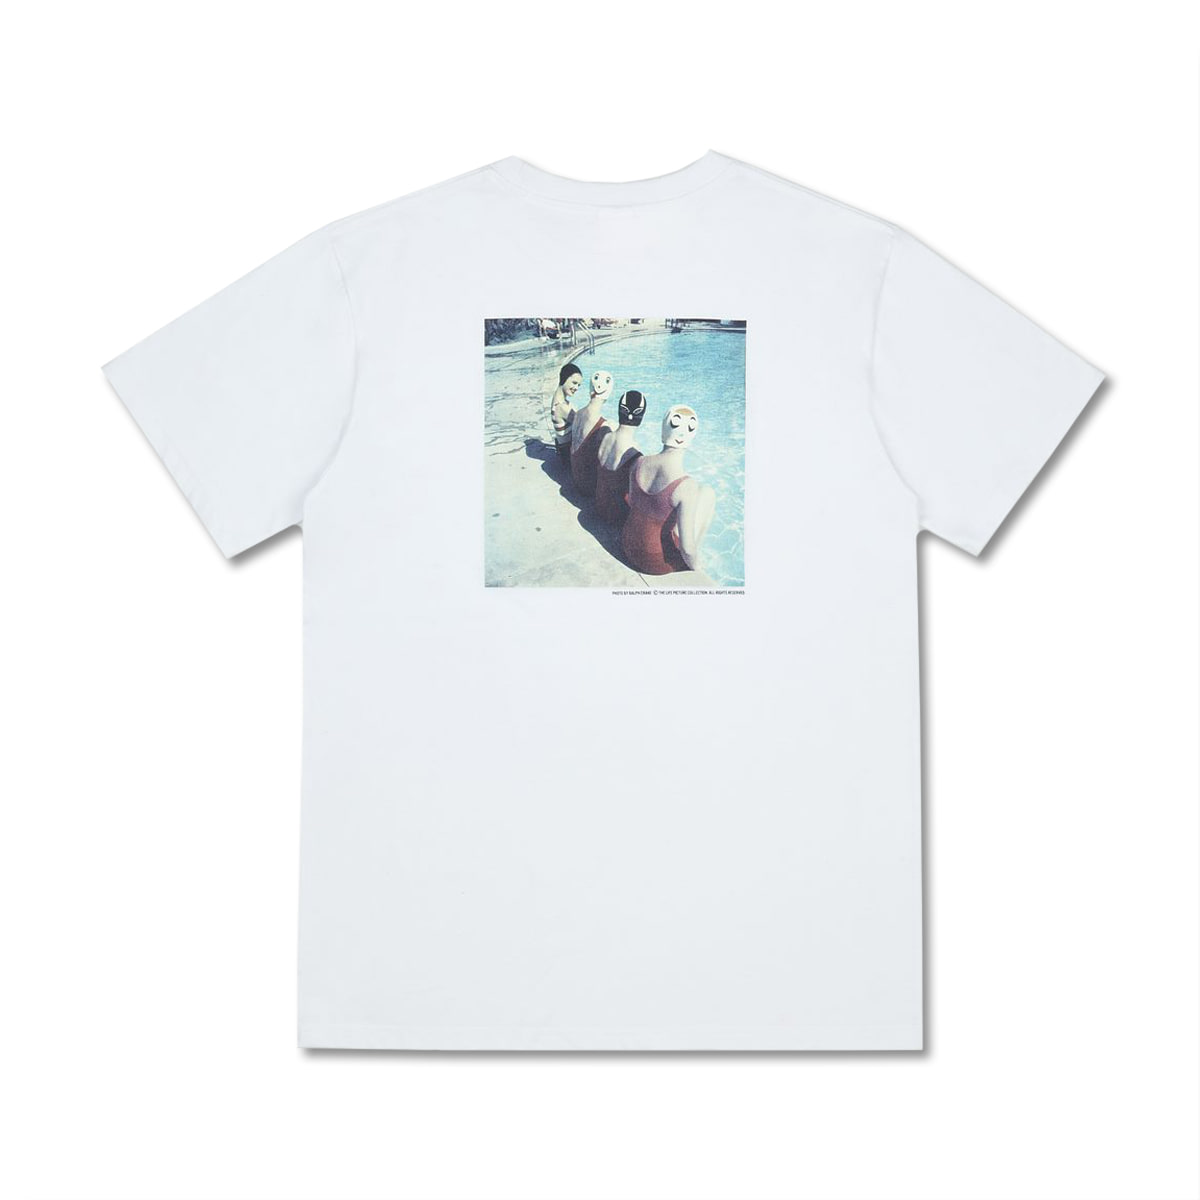 [LIFE ACHIVE] SUMMER LIFE POOLSIDE T-SHIRT 'WHITE'